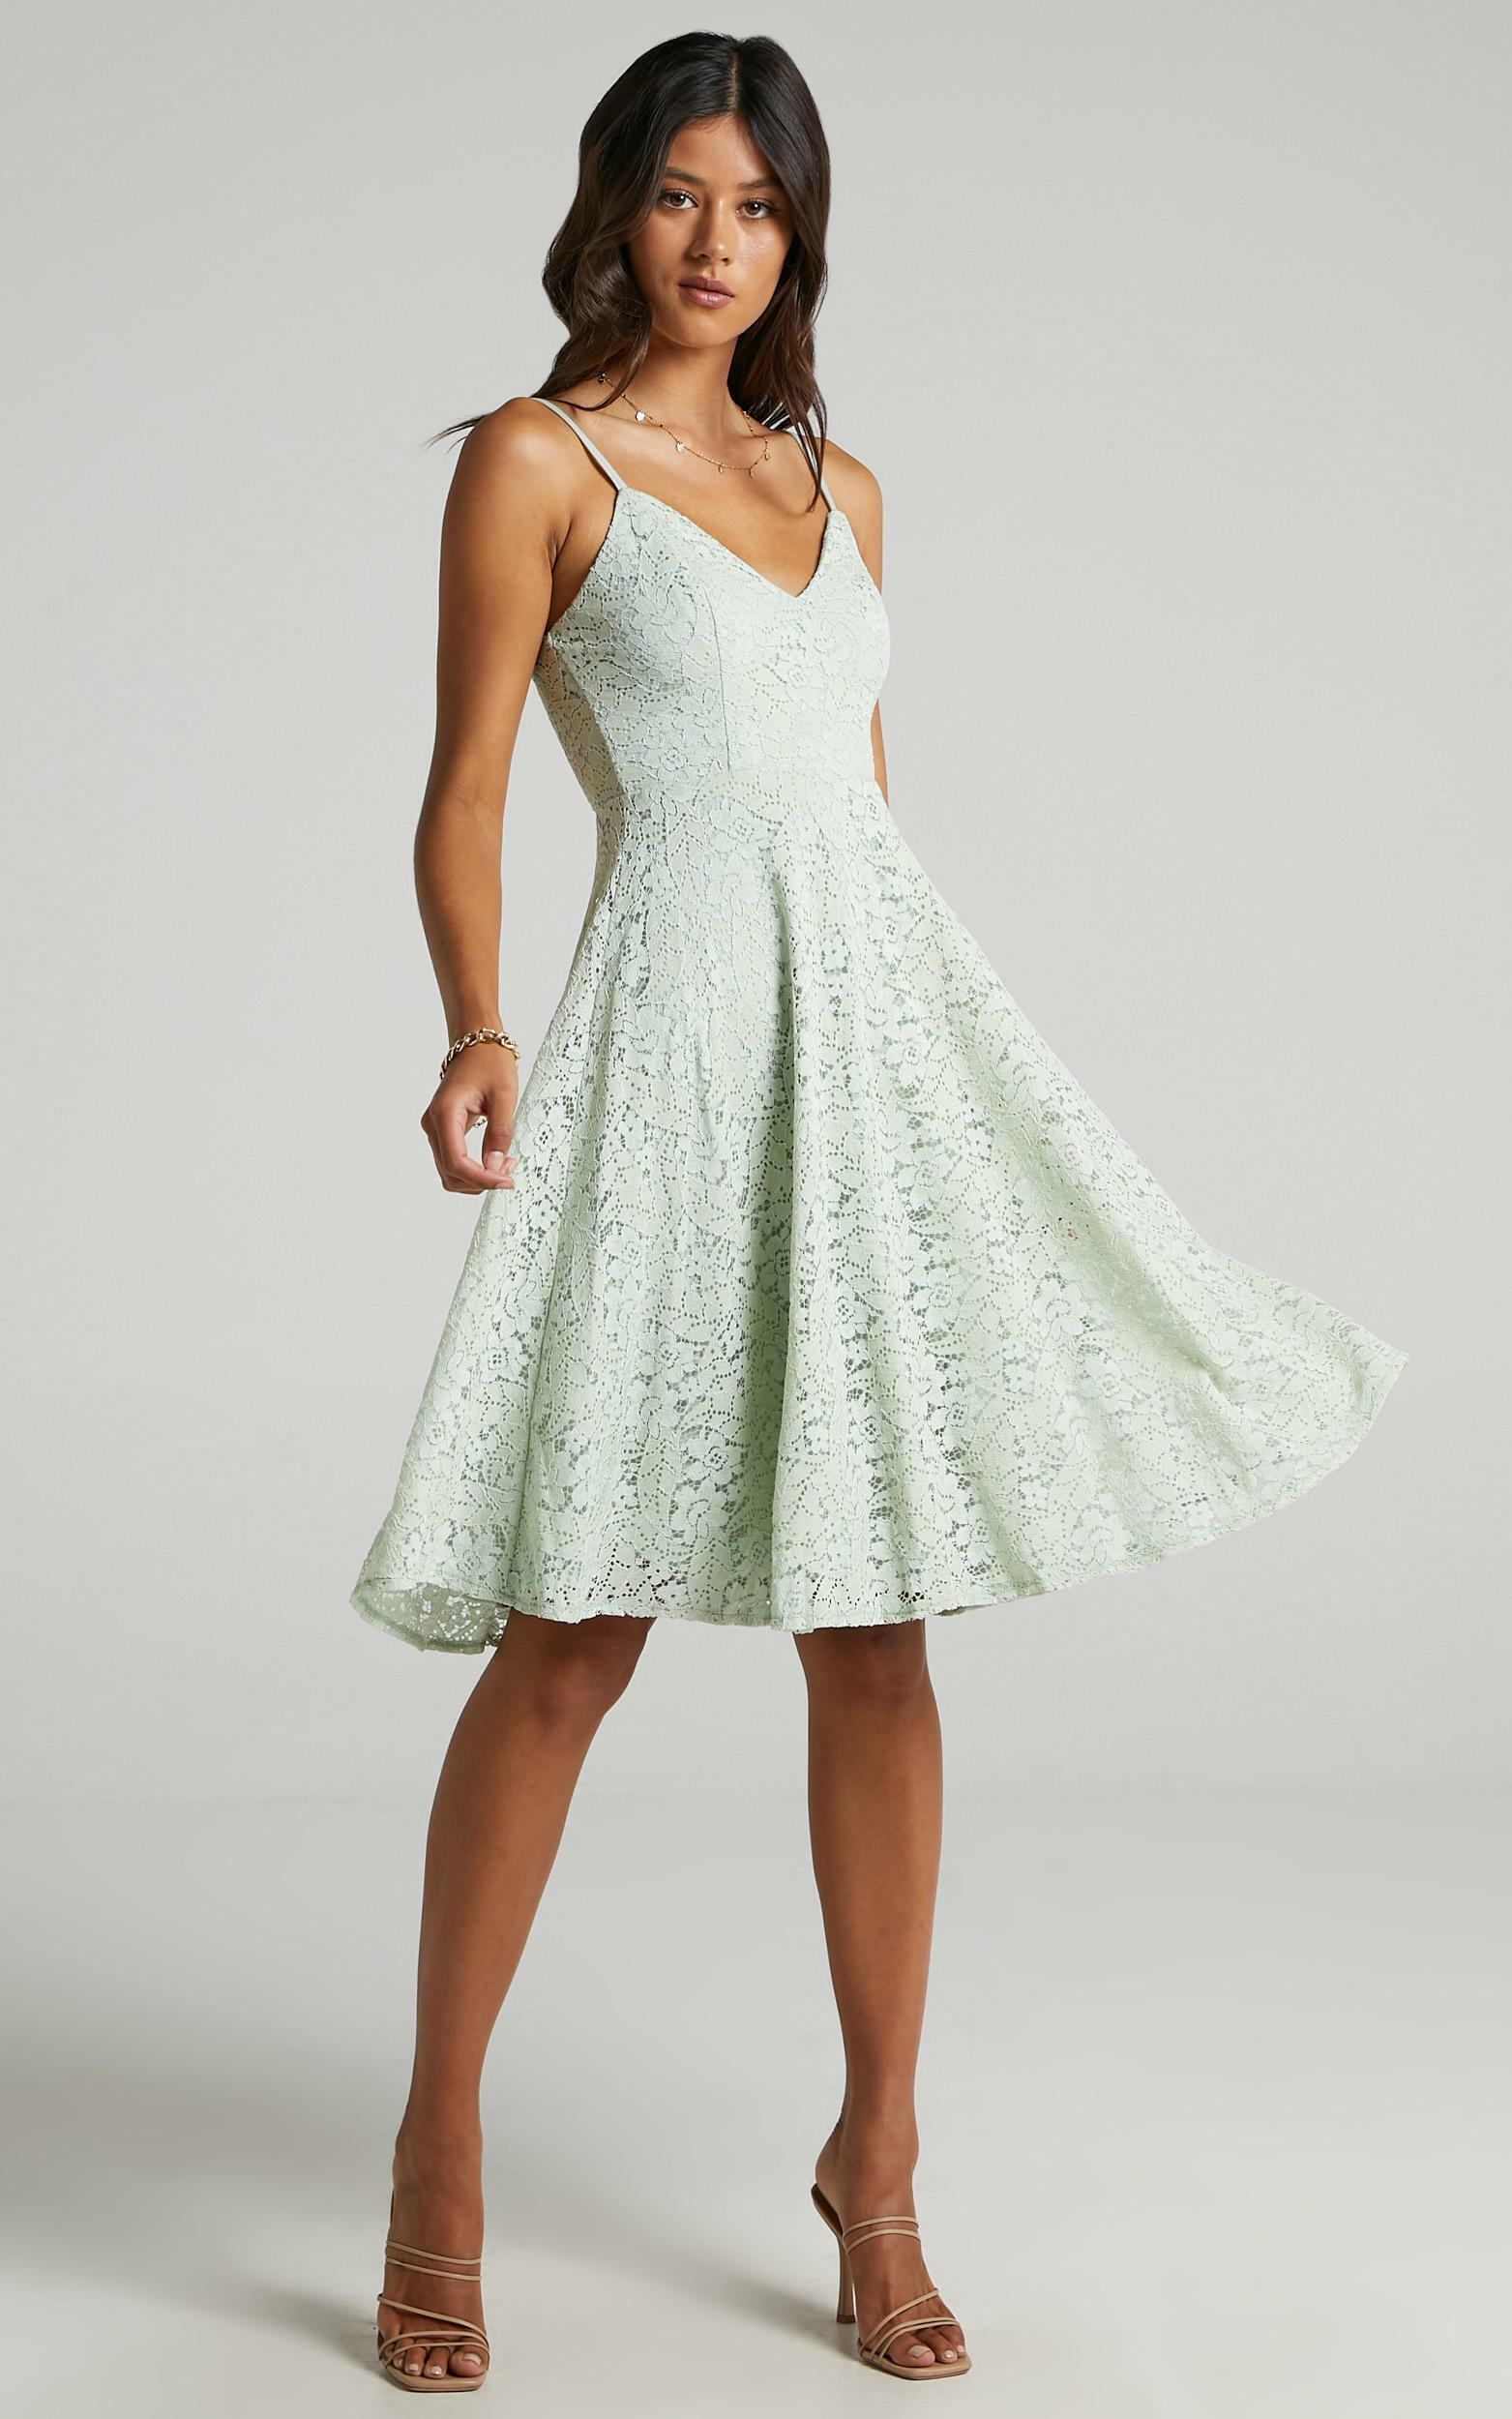 Far Beyond Dress in sage lace - 20 (XXXXL), Sage, hi-res image number null